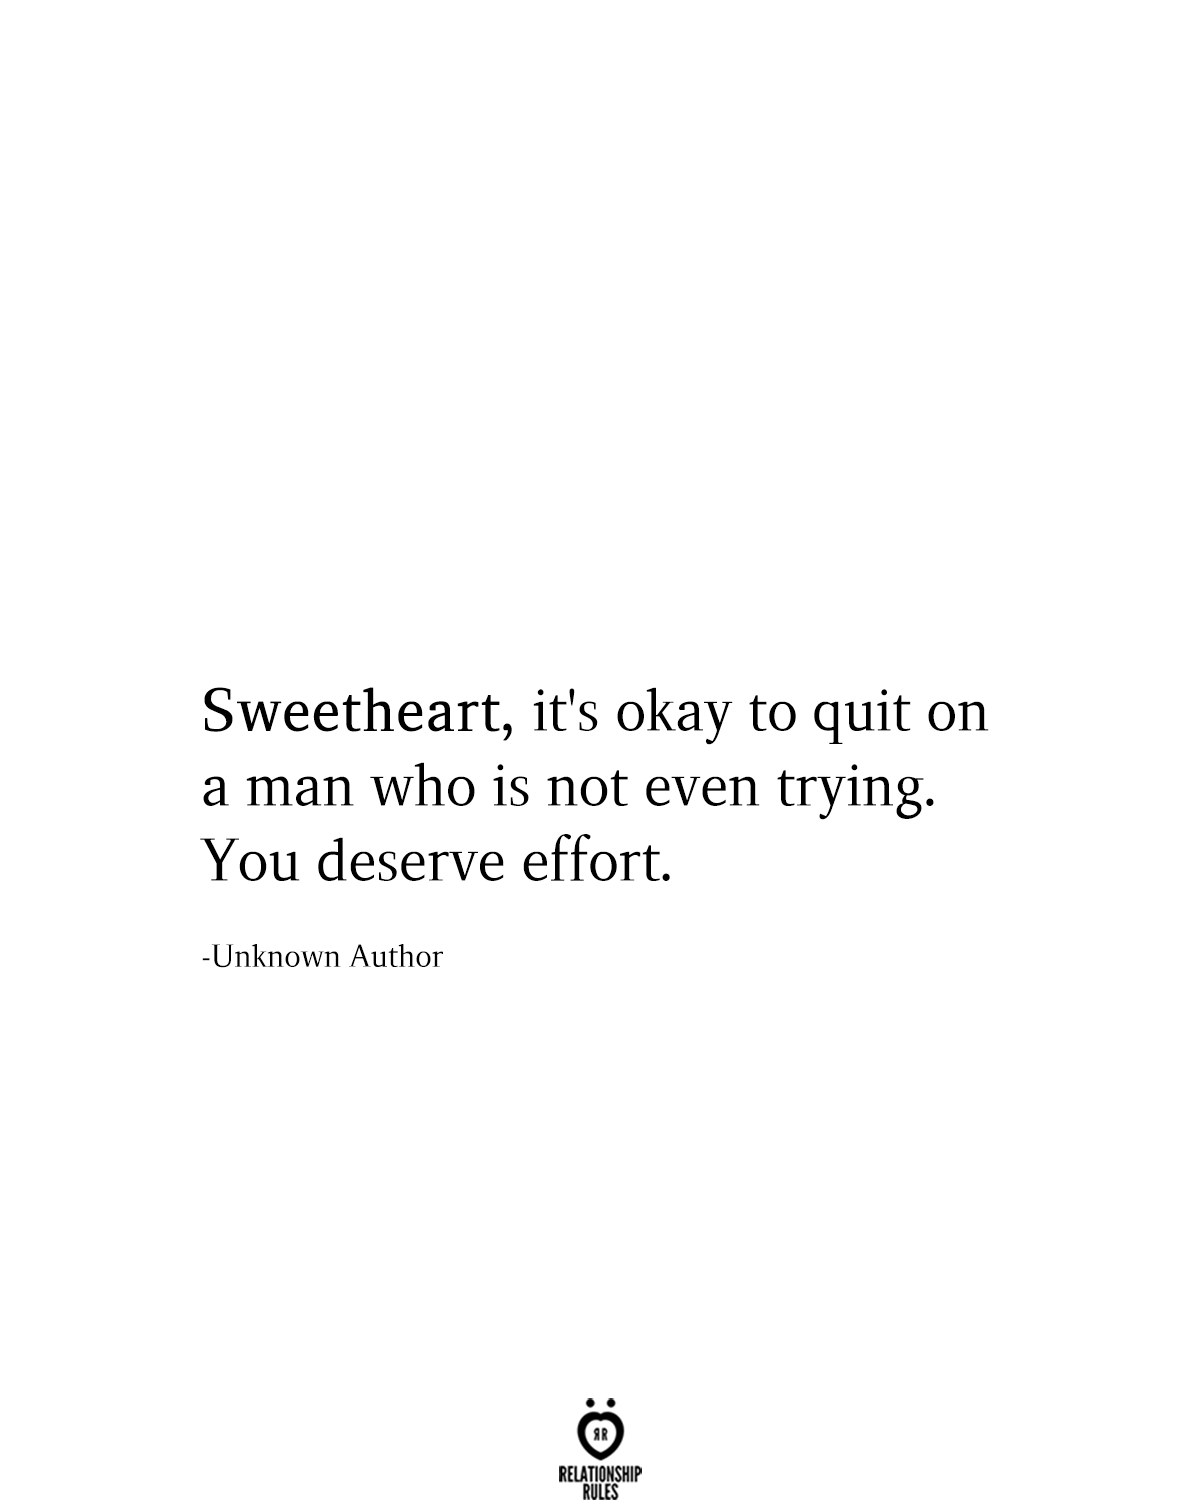 Sweetheart, It's Okay To Quit On A Man Who Is Not Even Trying